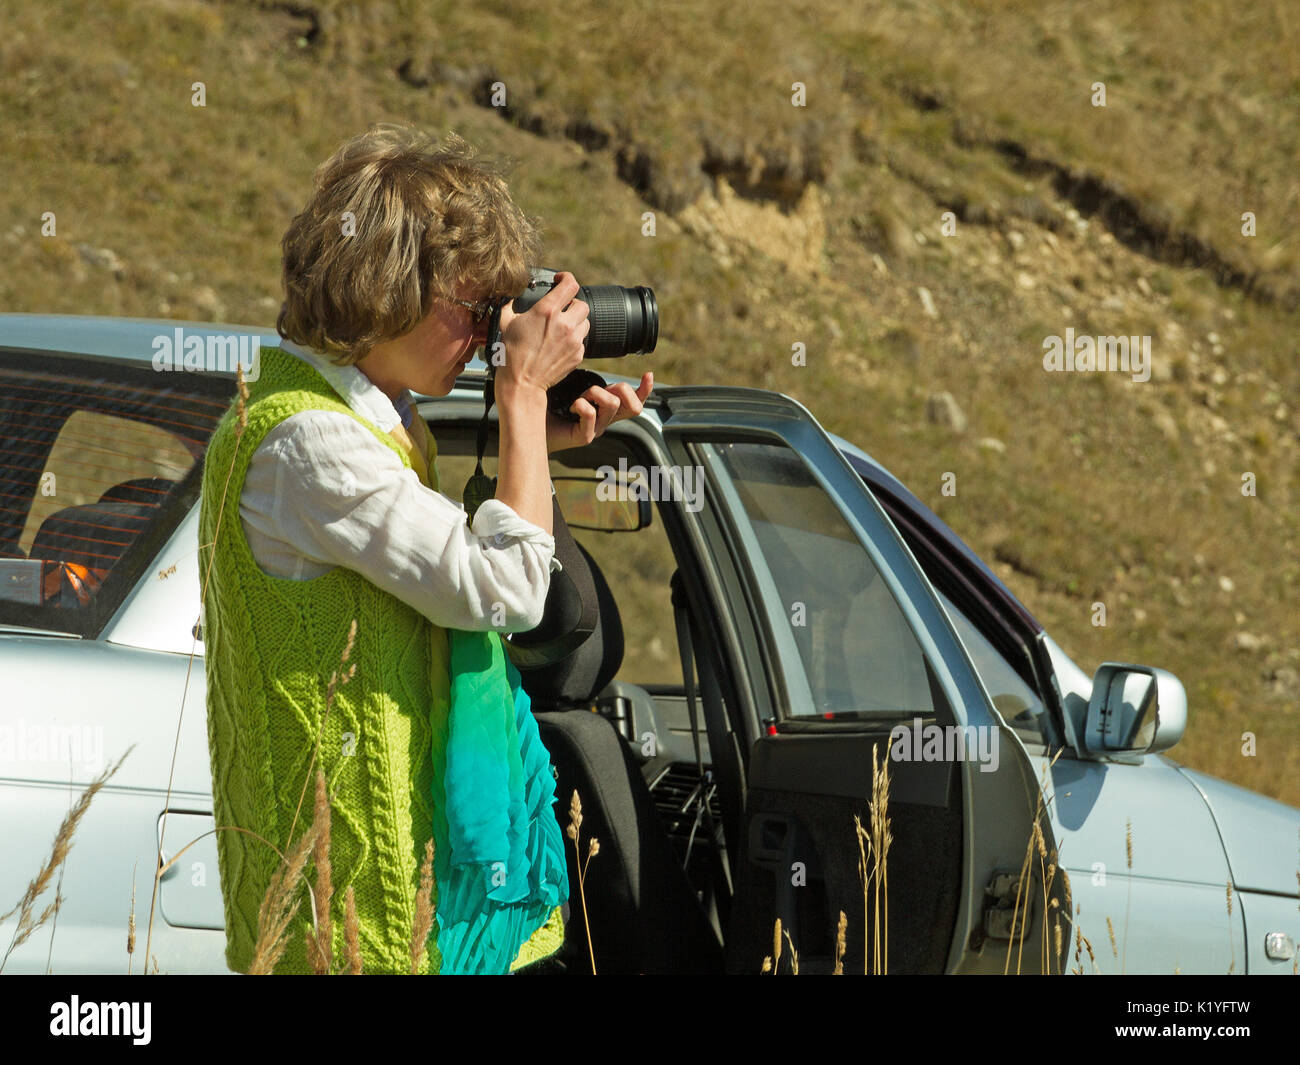 Nice looking pretty blondy caucasian happy successful girl with camera staying near her car within the mountain landscape shooting nature. - Stock Image